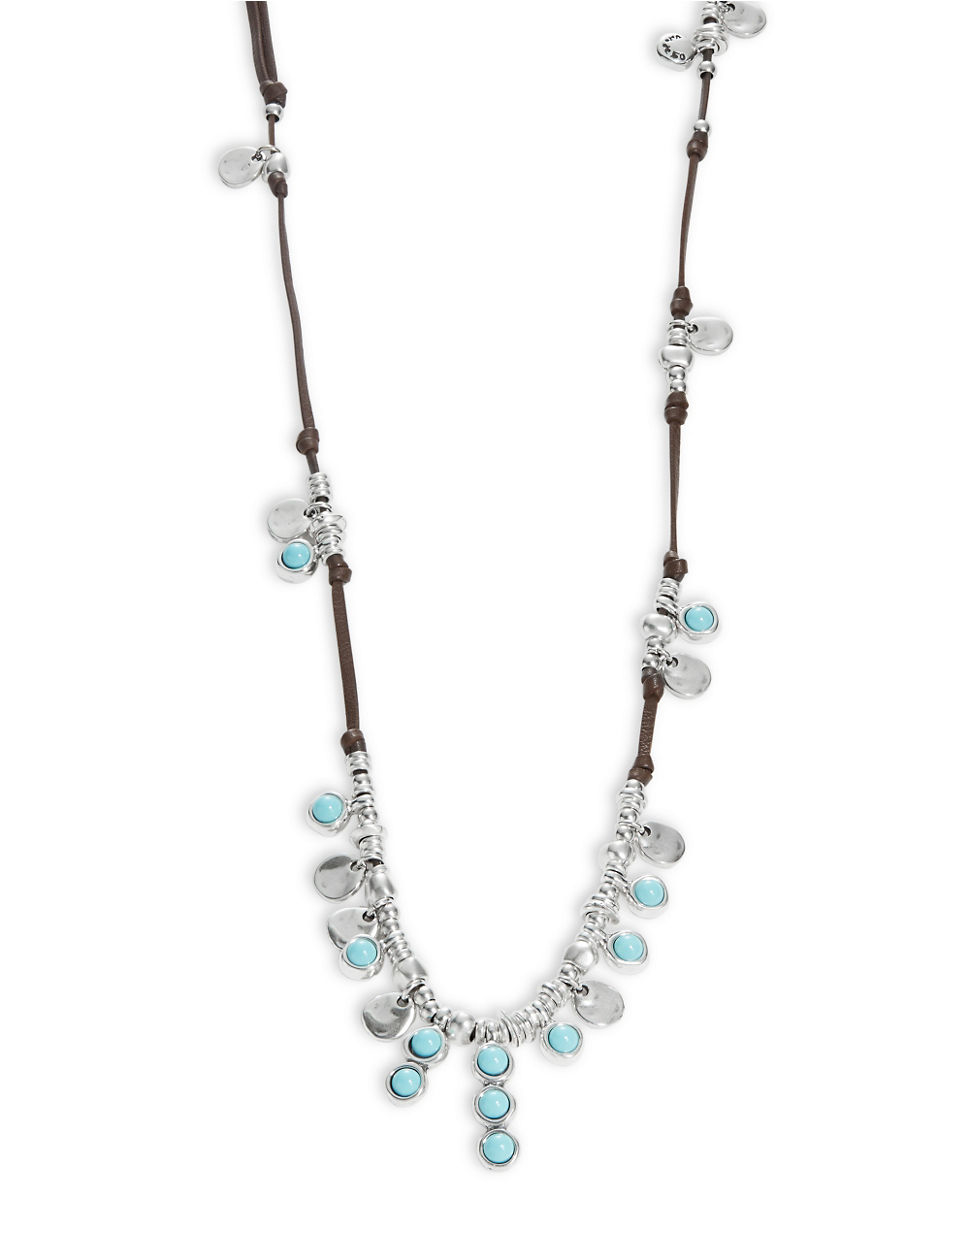 Uno De 50 Pearl Art Deco Necklace Silver 1 likewise Leather Necklace With An Shell Casings Pendant For Women And Men Length 45cm Lobster Clasp 2 furthermore  additionally Uno De 50 Glastonbury Beaded Statement Necklace Turquoise 1 additionally 450500768952640165. on leather purses product